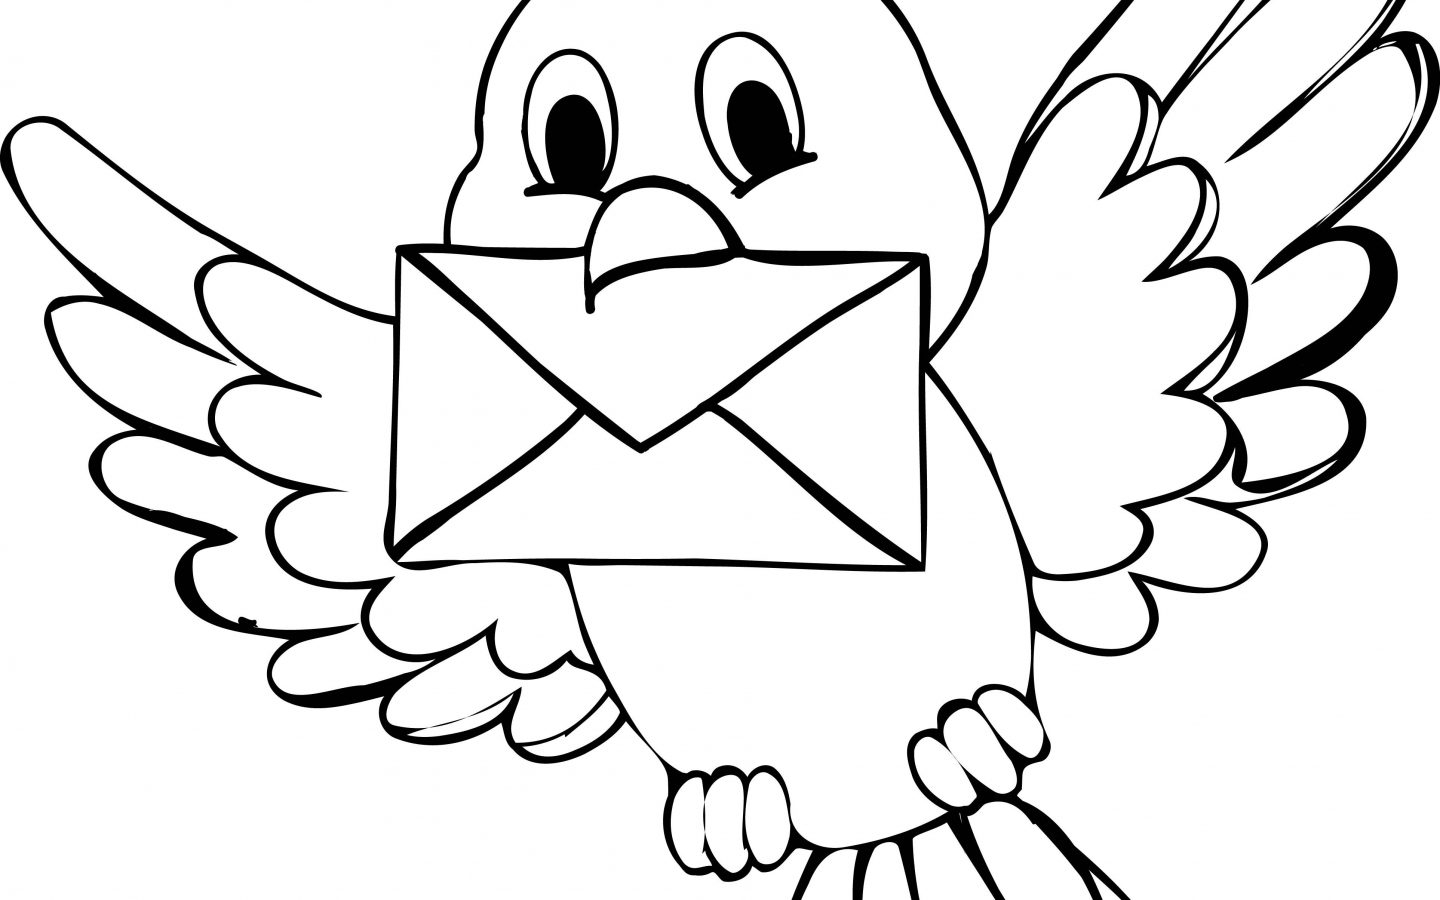 Birds Coloring Pages Picture - Whitesbelfast | 900x1440